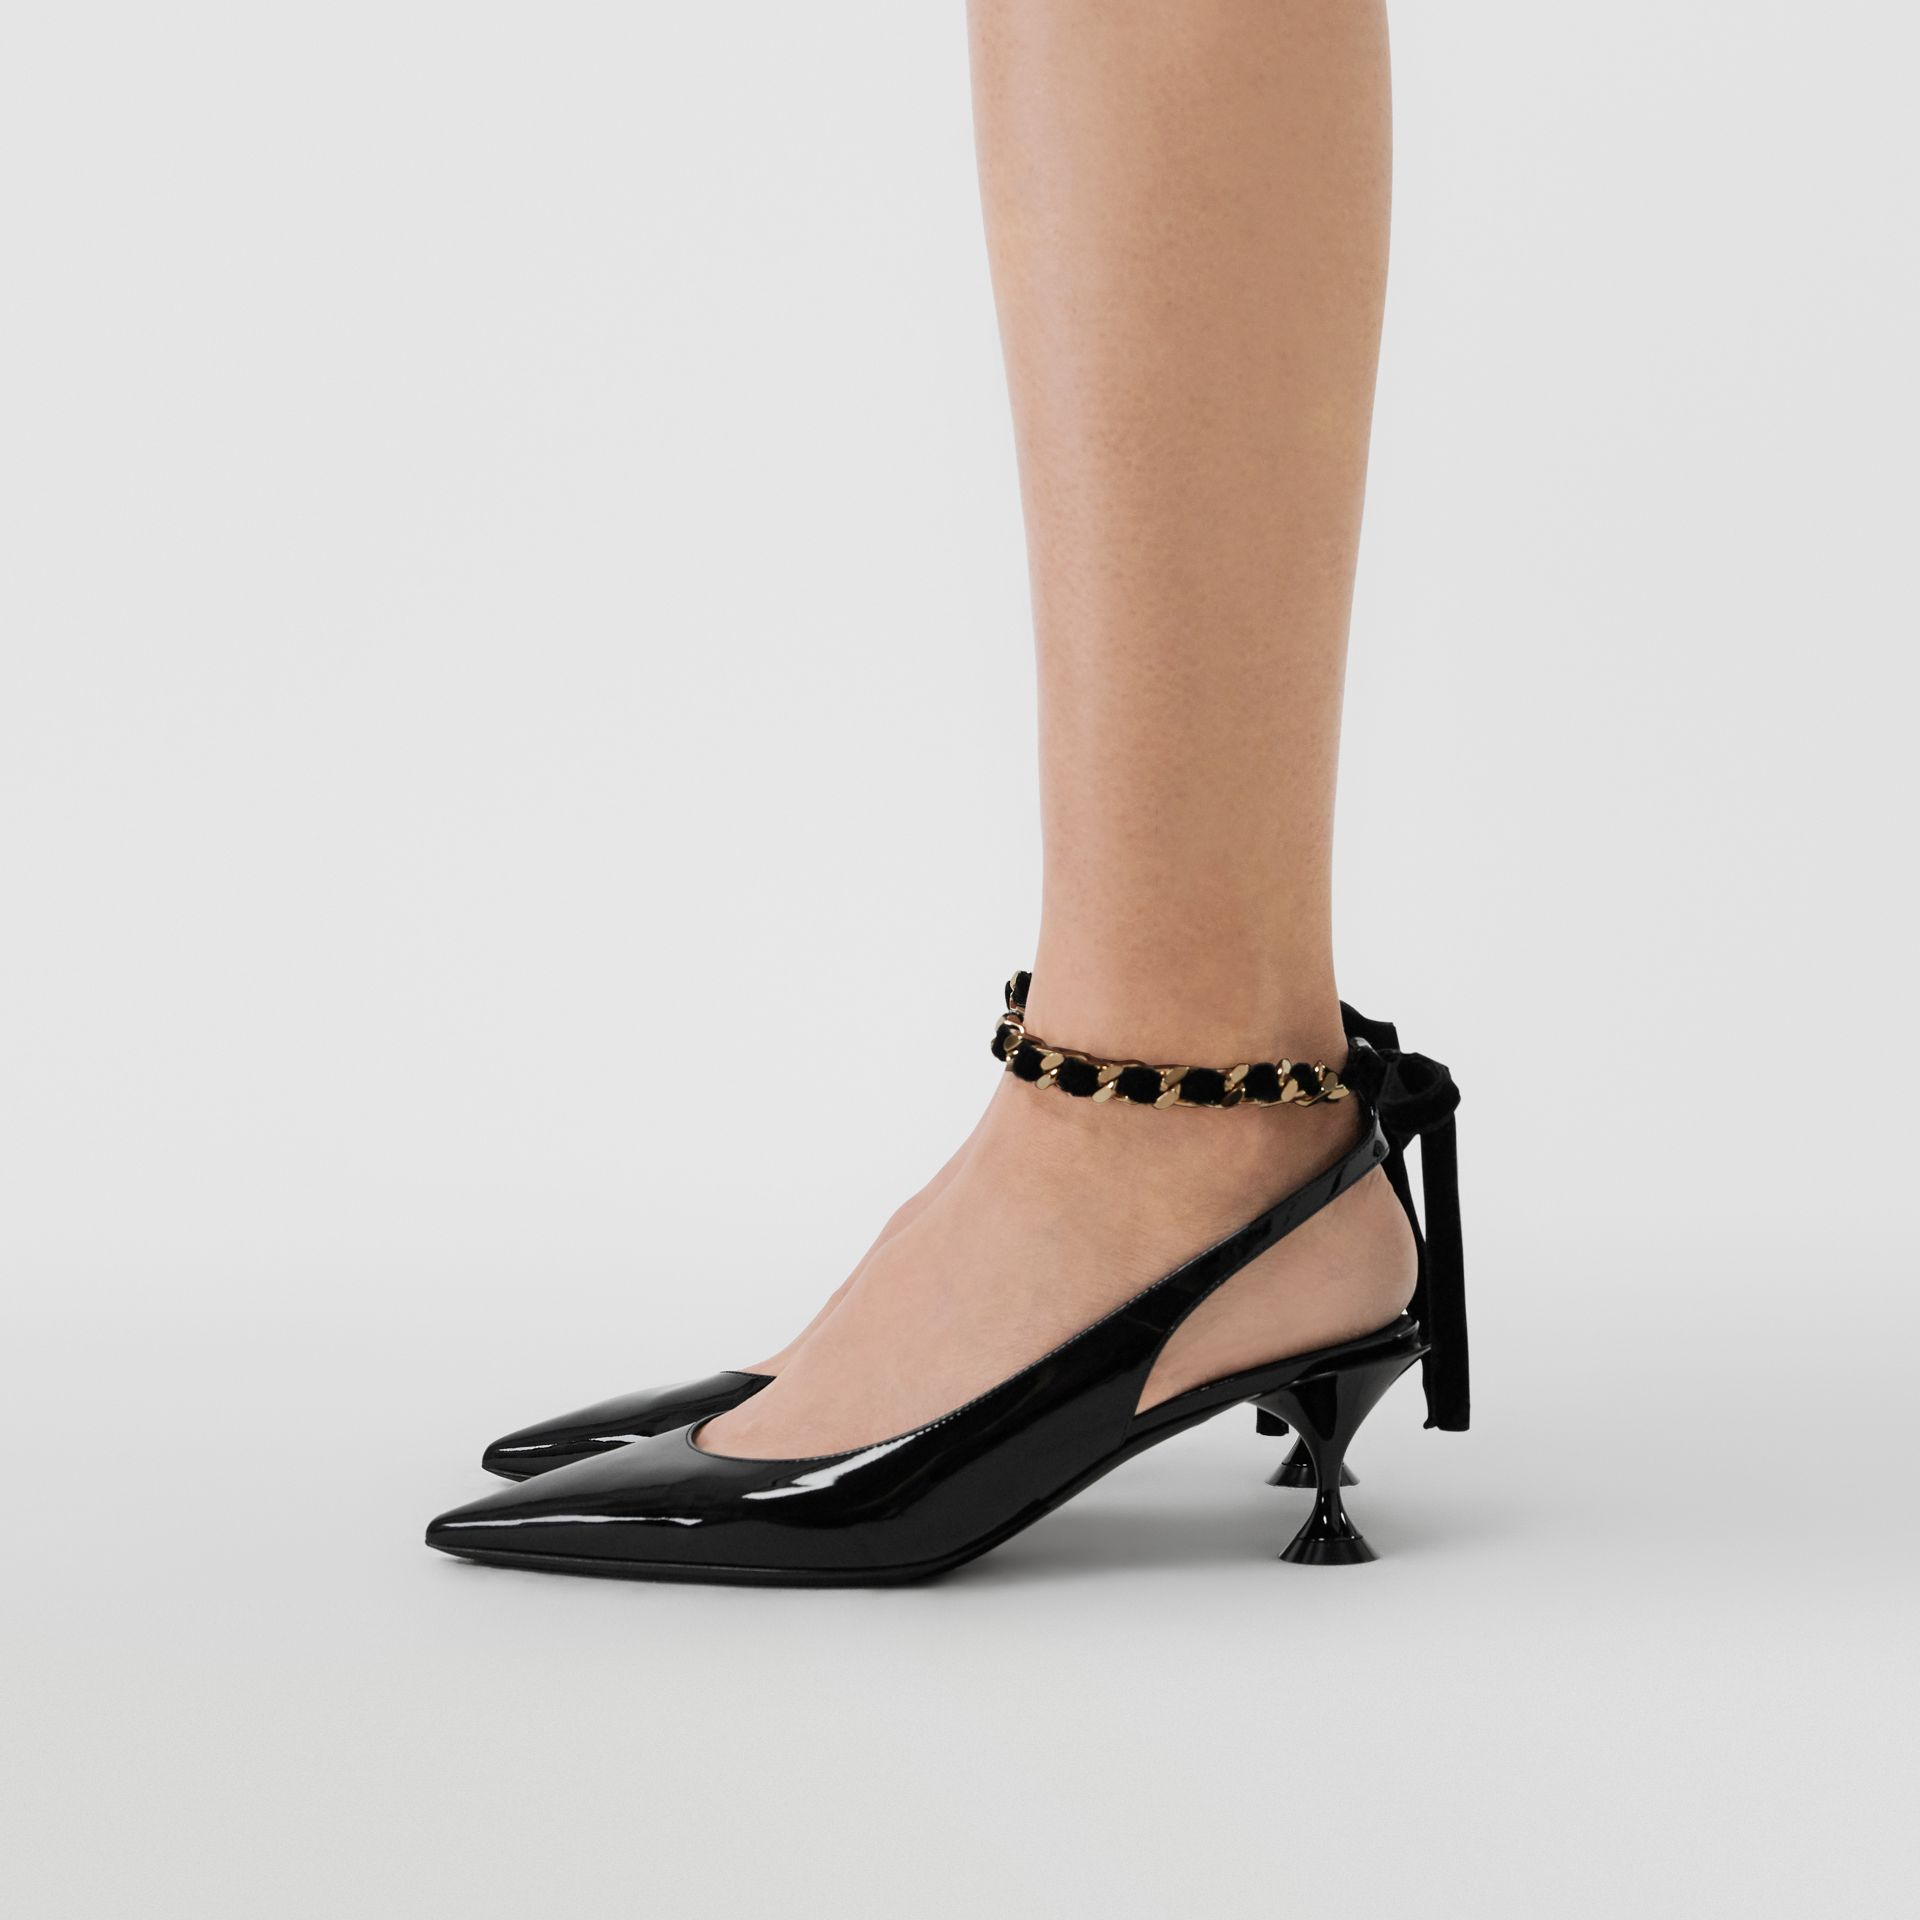 Chain Detail Leather Slingback Pumps in Black - Women | Burberry Canada - gallery image 2